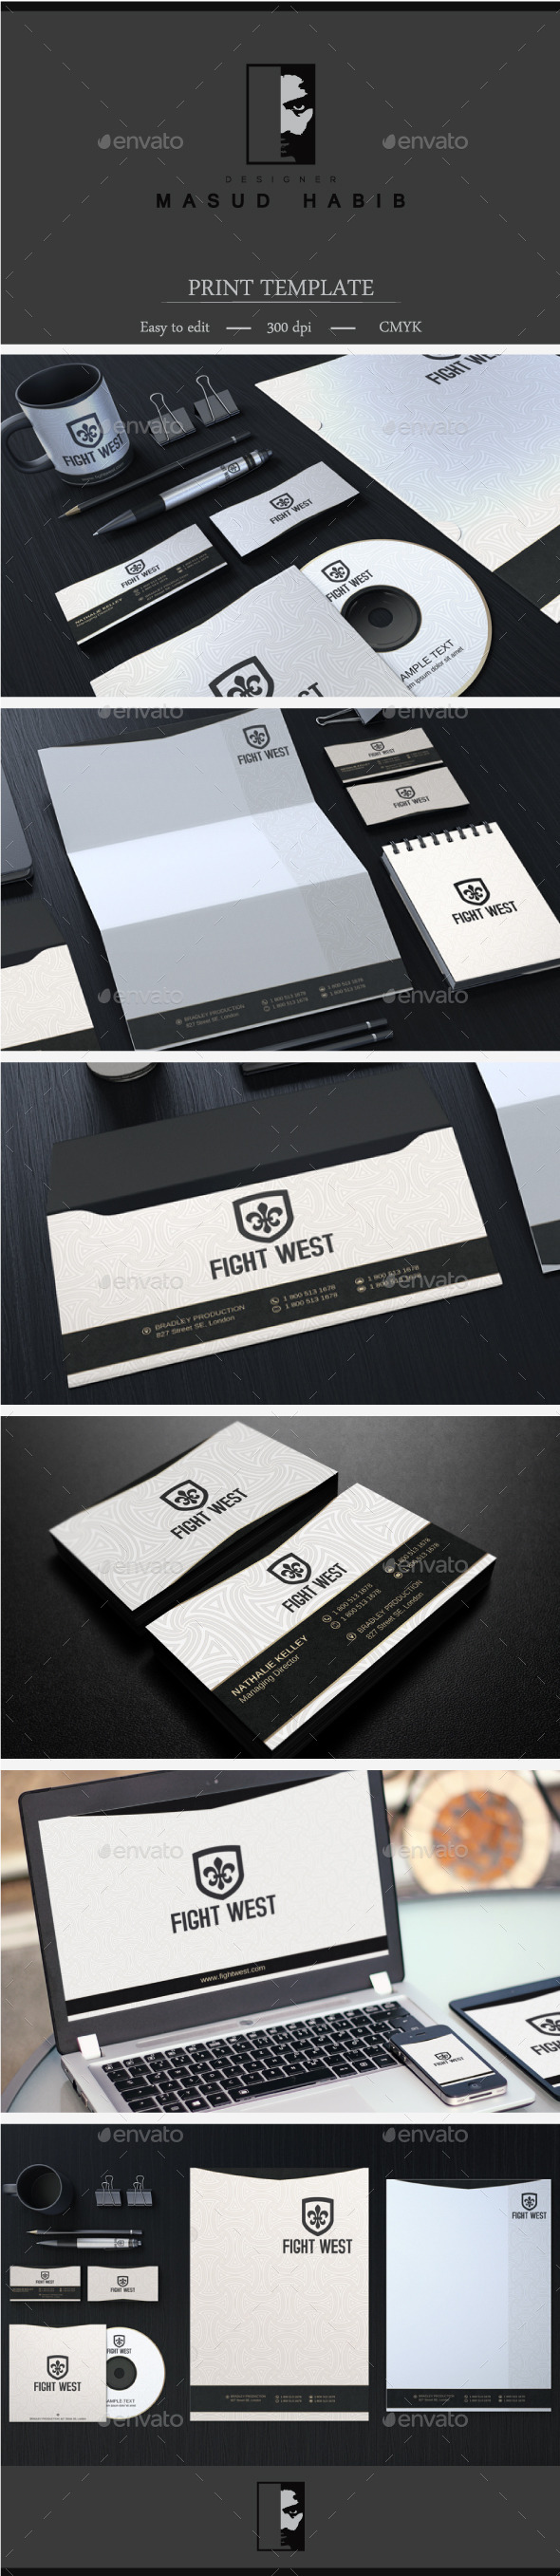 Creative Corporate Identity 24 - Stationery Print Templates